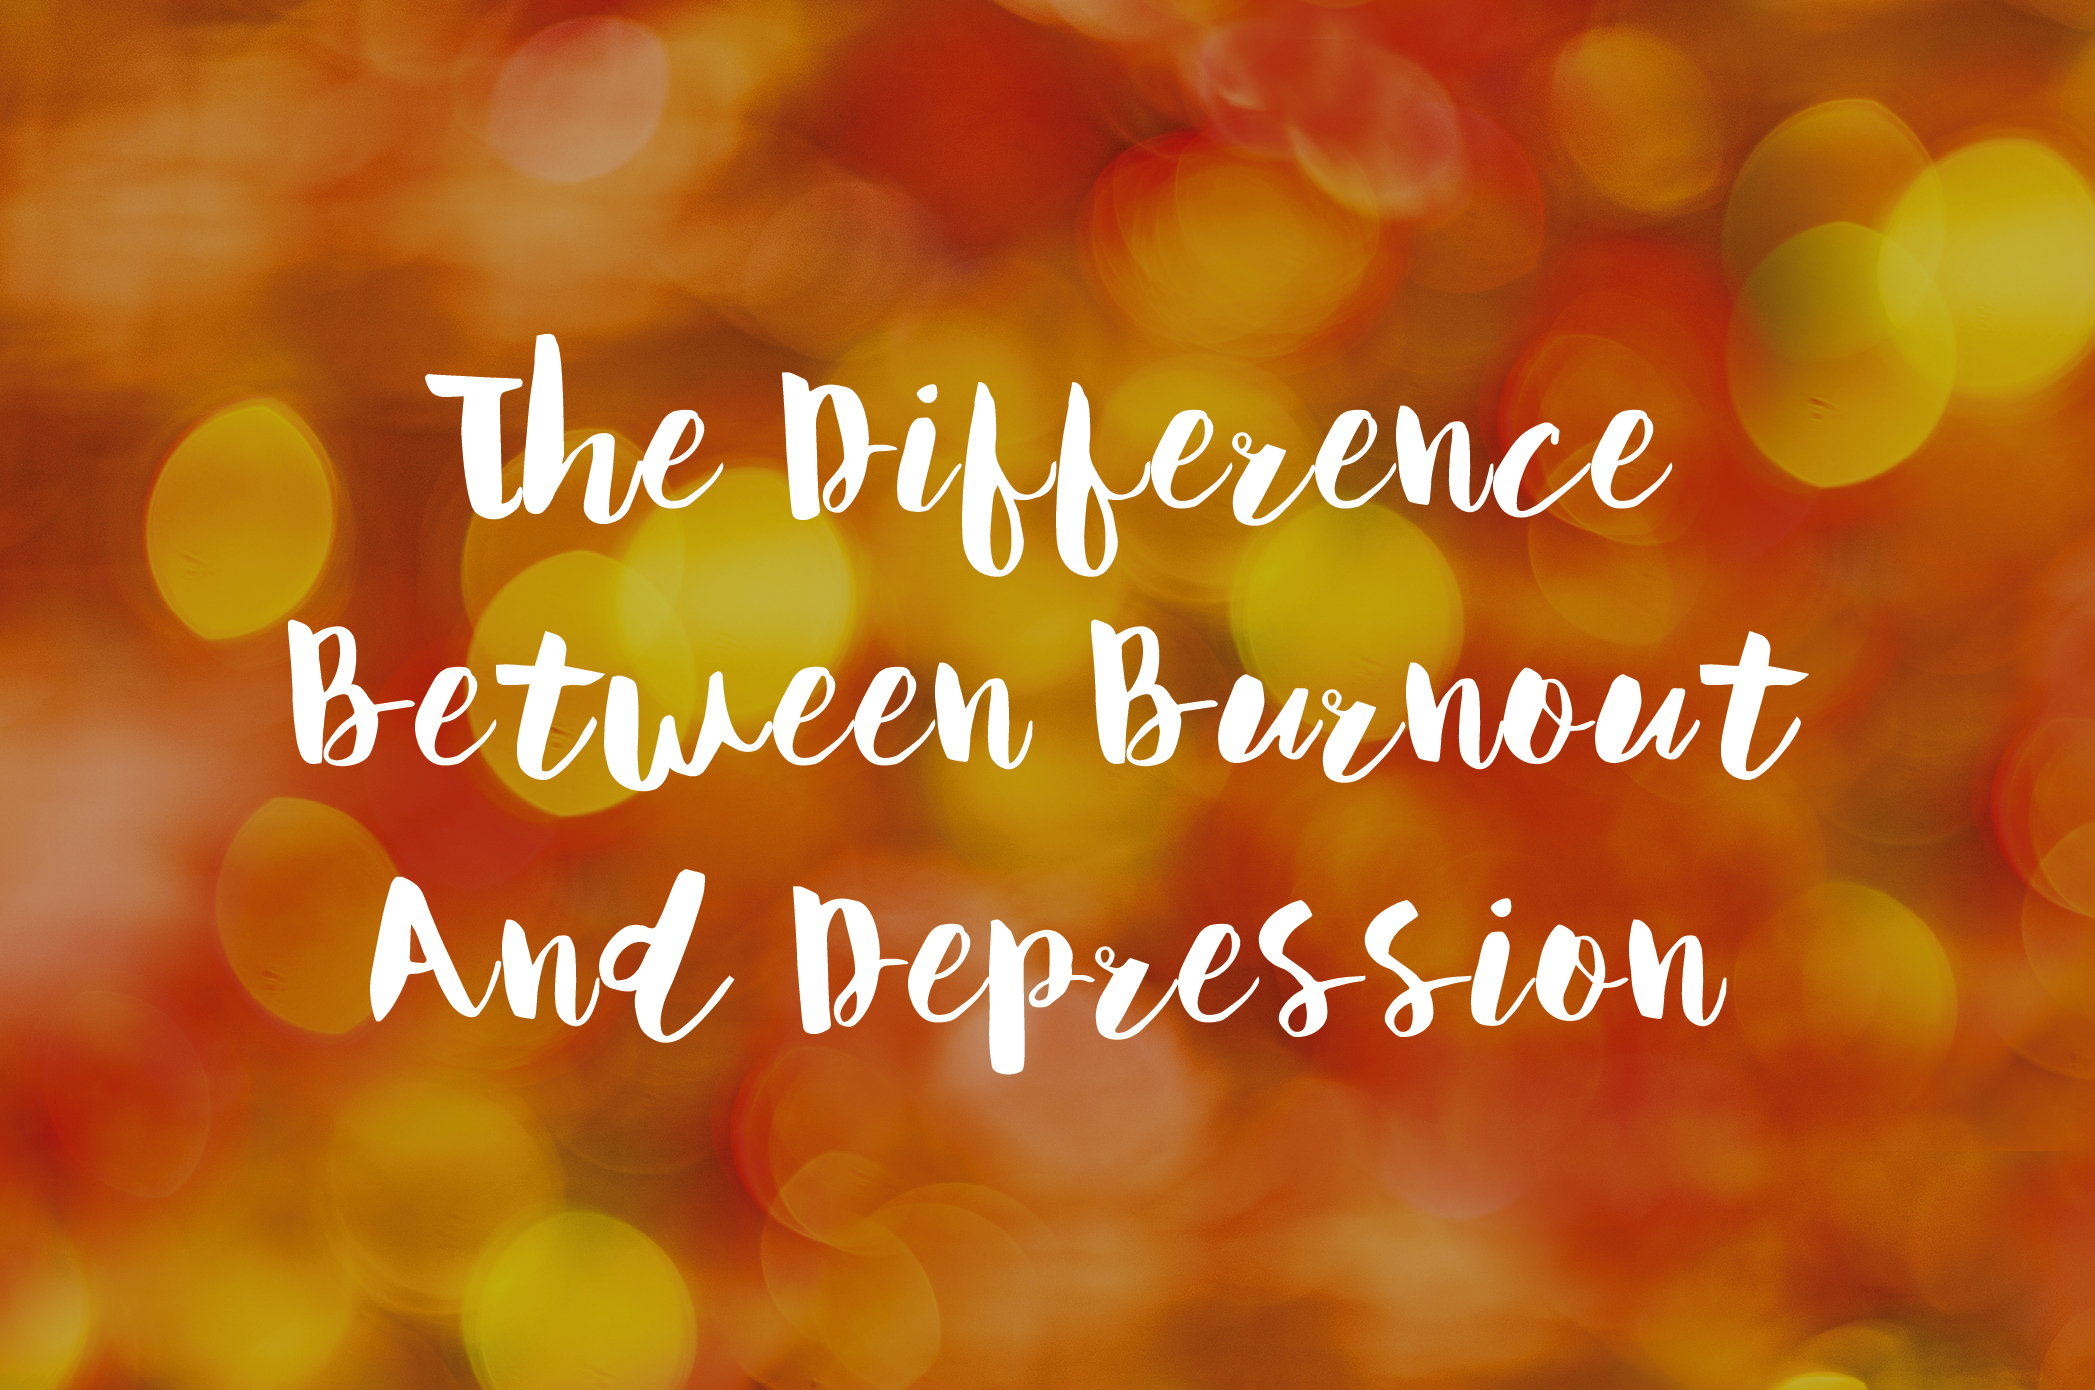 The Difference Between Burnout And Depression